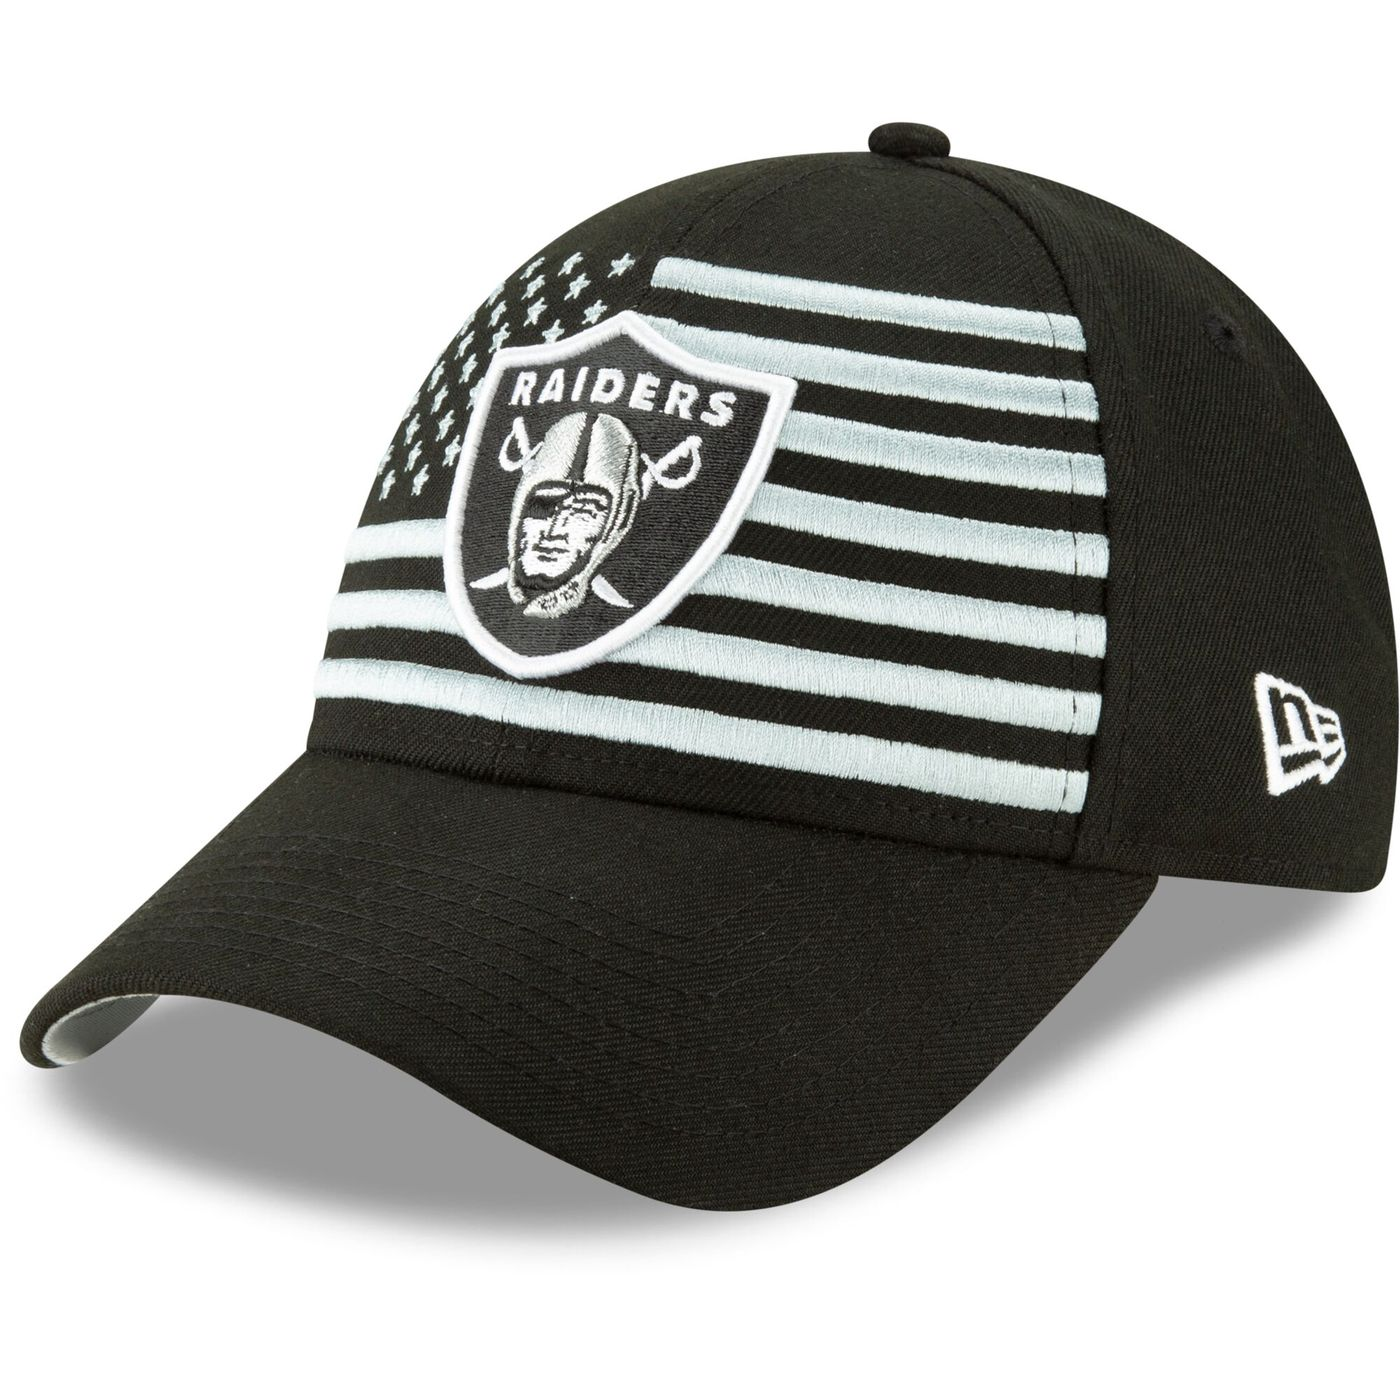 more photos d718b 2356e The New Era 2019 NFL Draft hats drop with new looks for every team -  SBNation.com